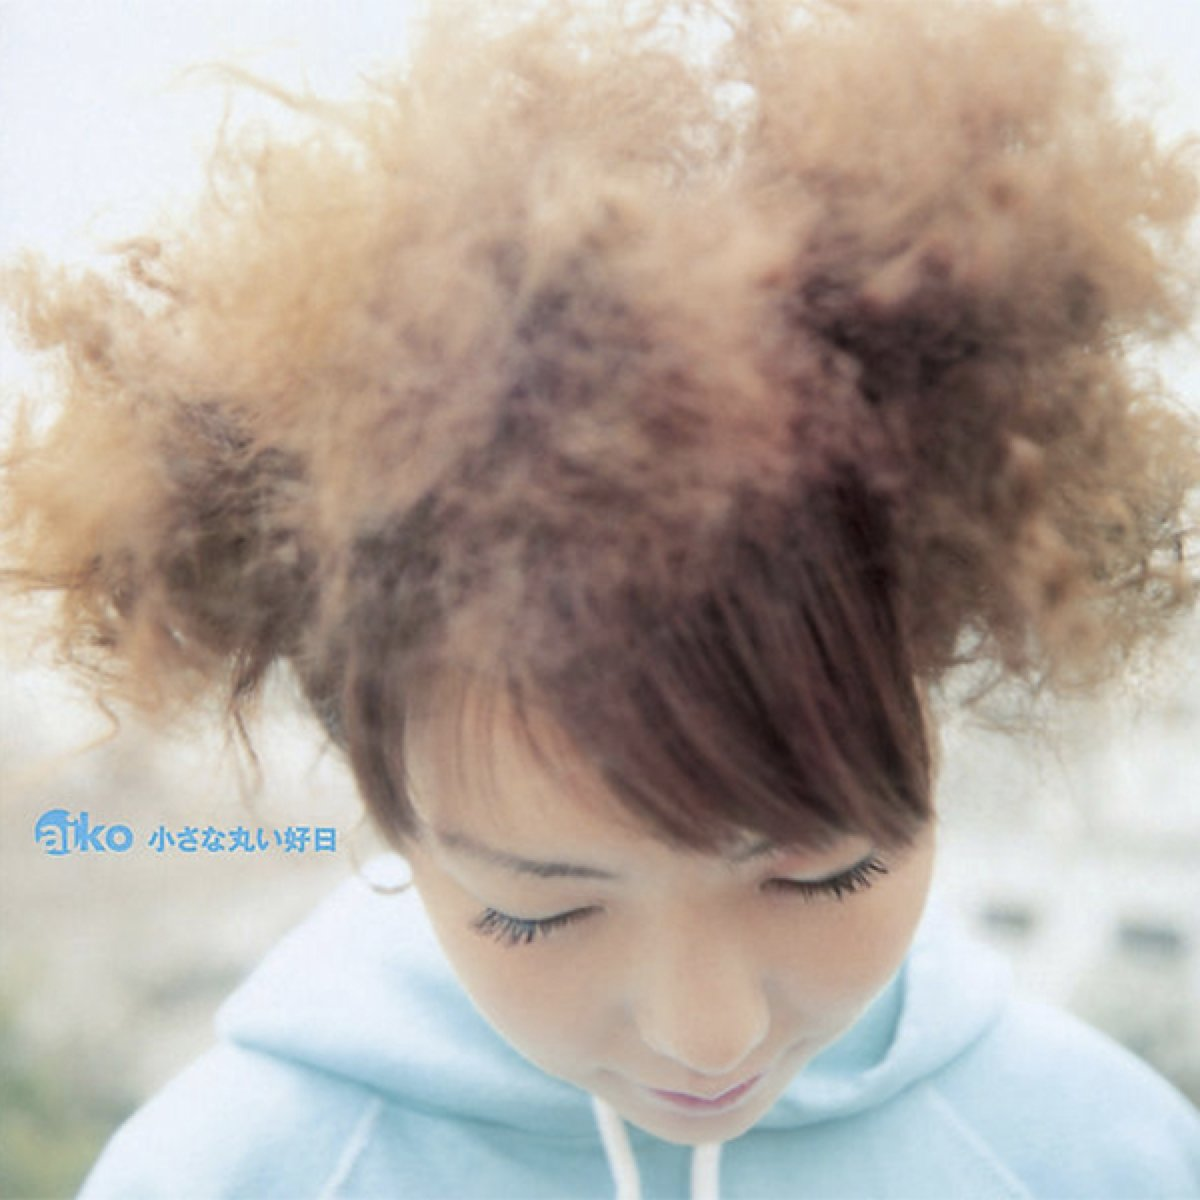 #Music: 私生活 - aiko #TwitSongMac